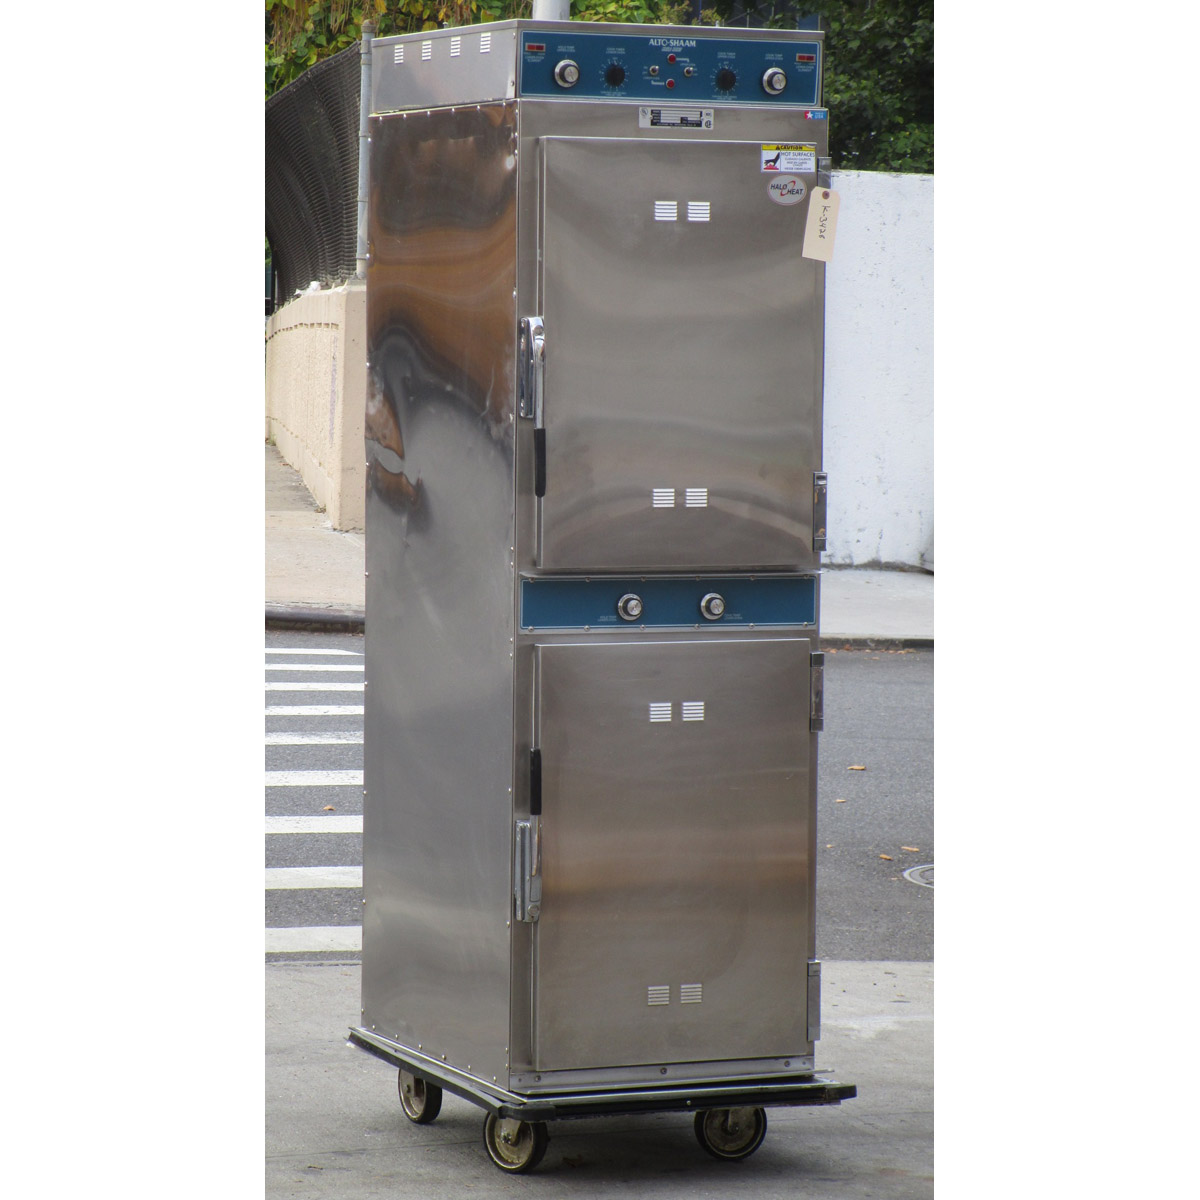 Check out the Alto Shaam Cook Hold Oven Very Good Condition Product Photo